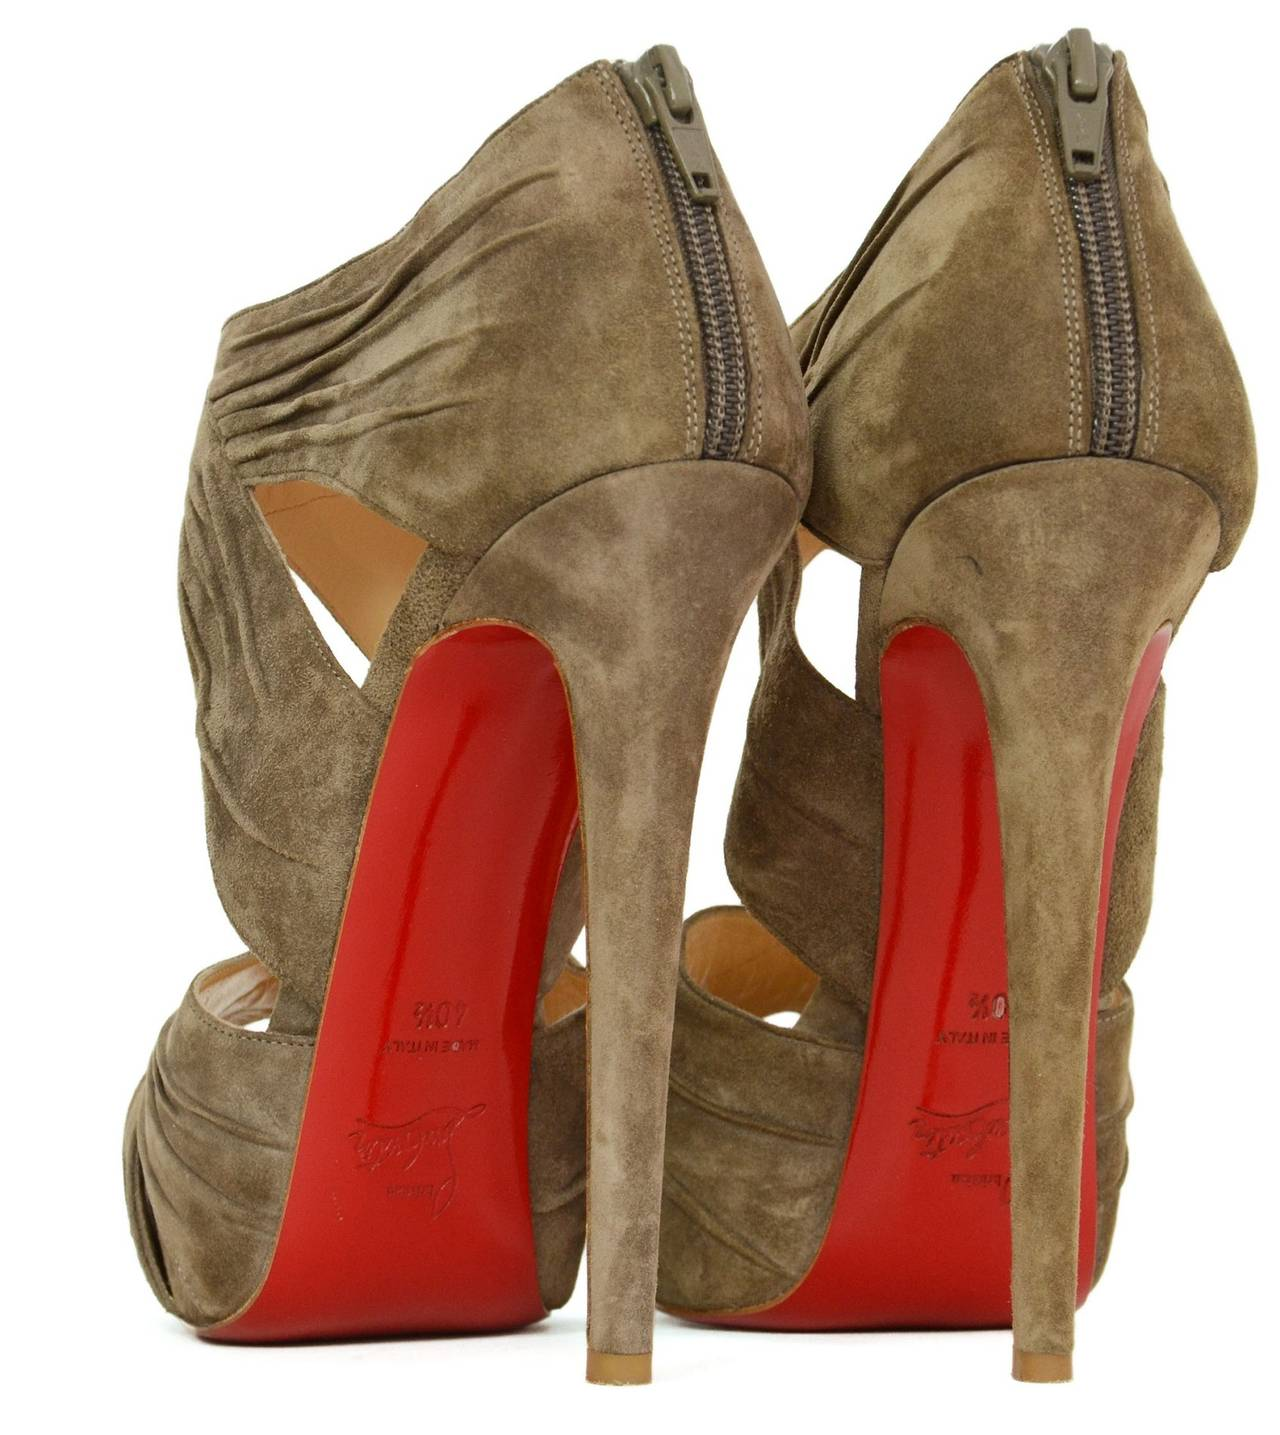 CHRISTIAN LOUBOUTIN Ruched Taupe Suede Bandra 140 Pumps sz 40.5 5